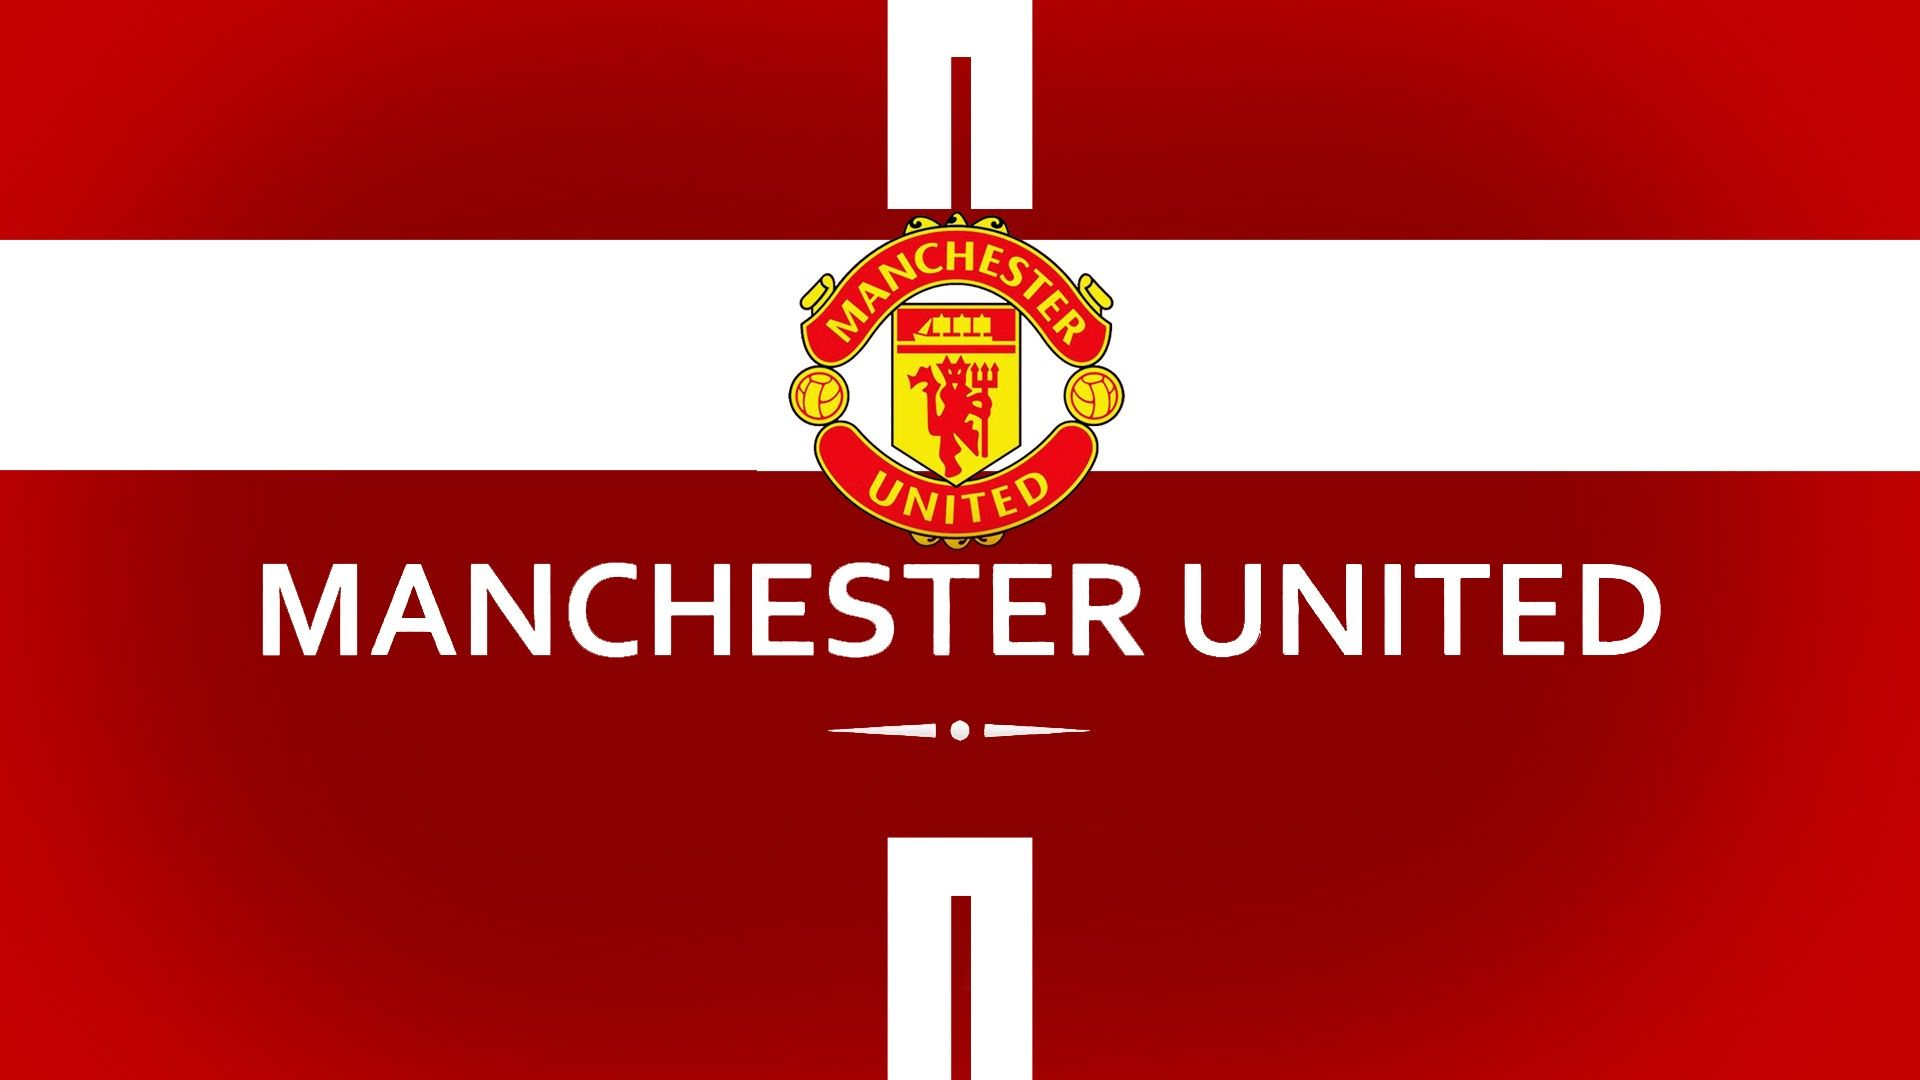 Most Nice Manchester United Wallpapers Players Fresh Man Utd Screensavers Free